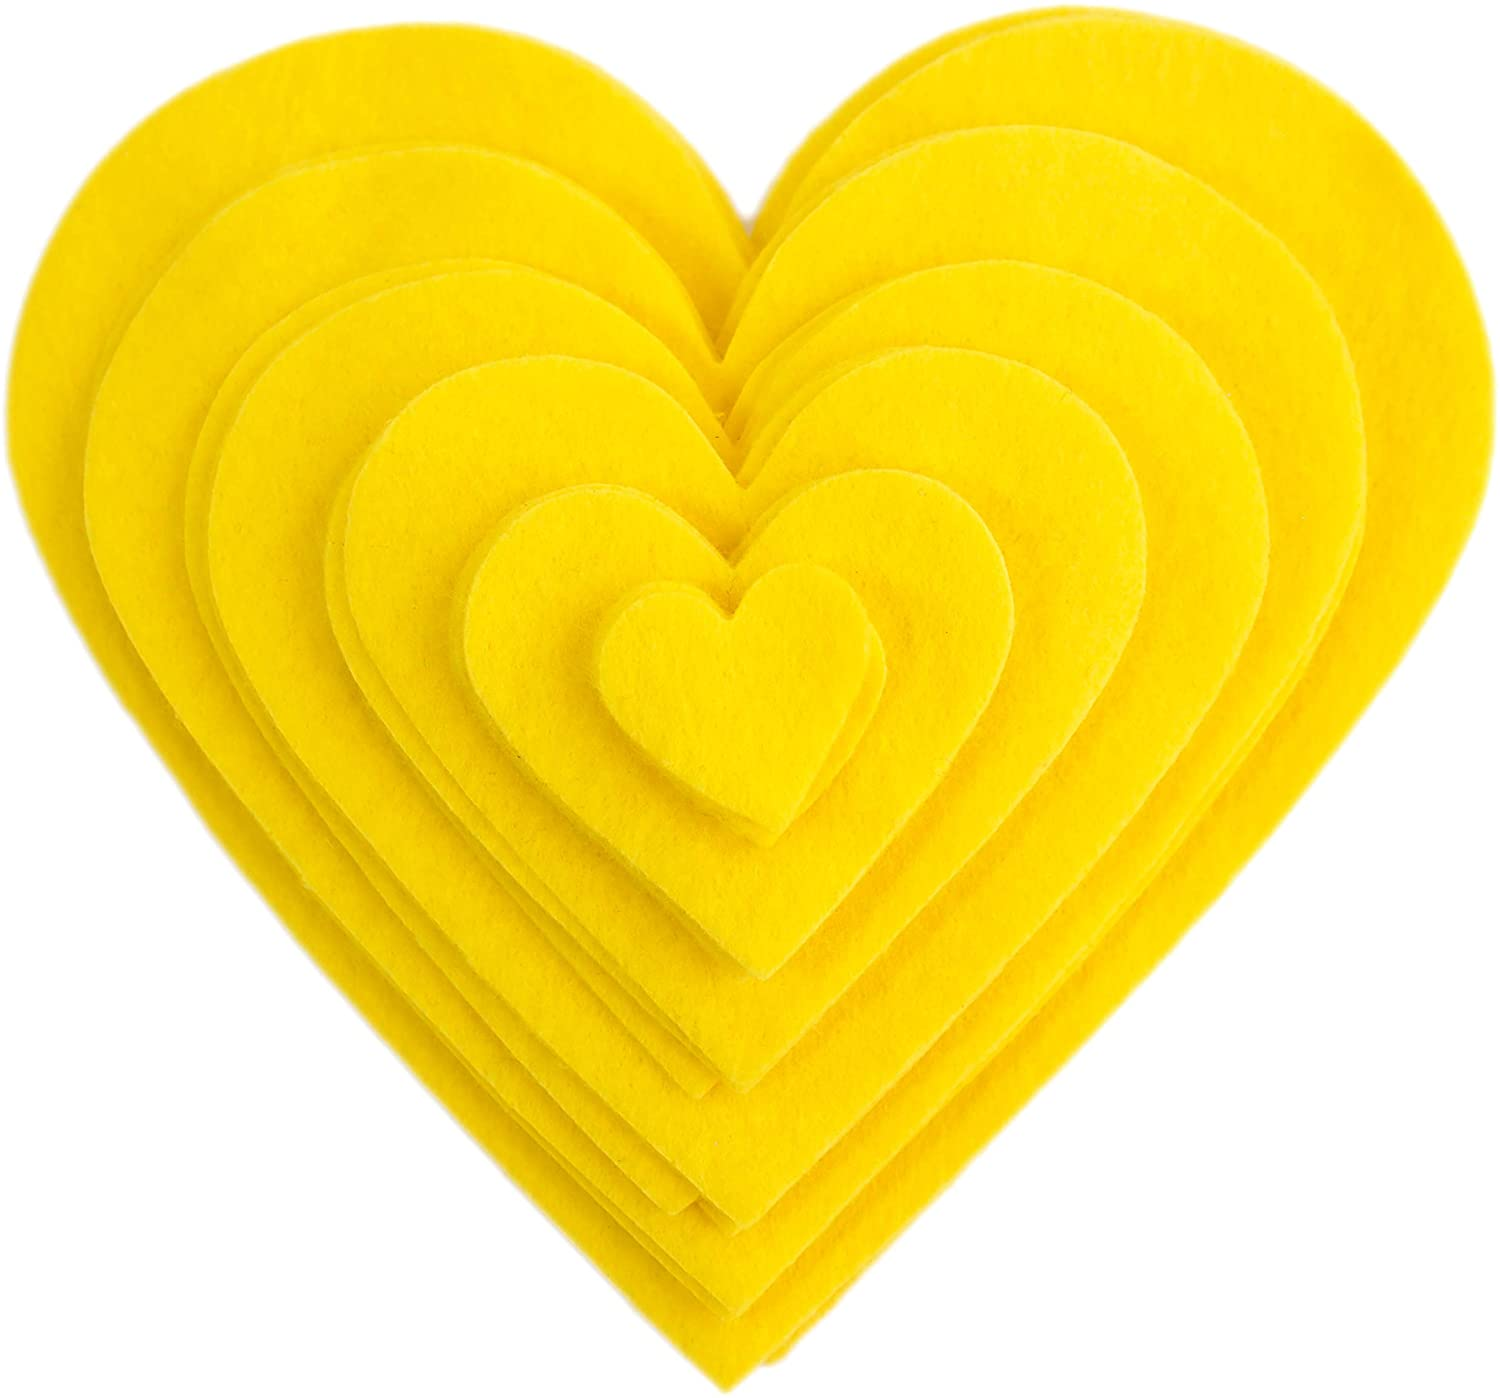 Playfully Ever After 1 to 6 inch Multi-Size Pack 24pc Felt Hearts (Yellow)